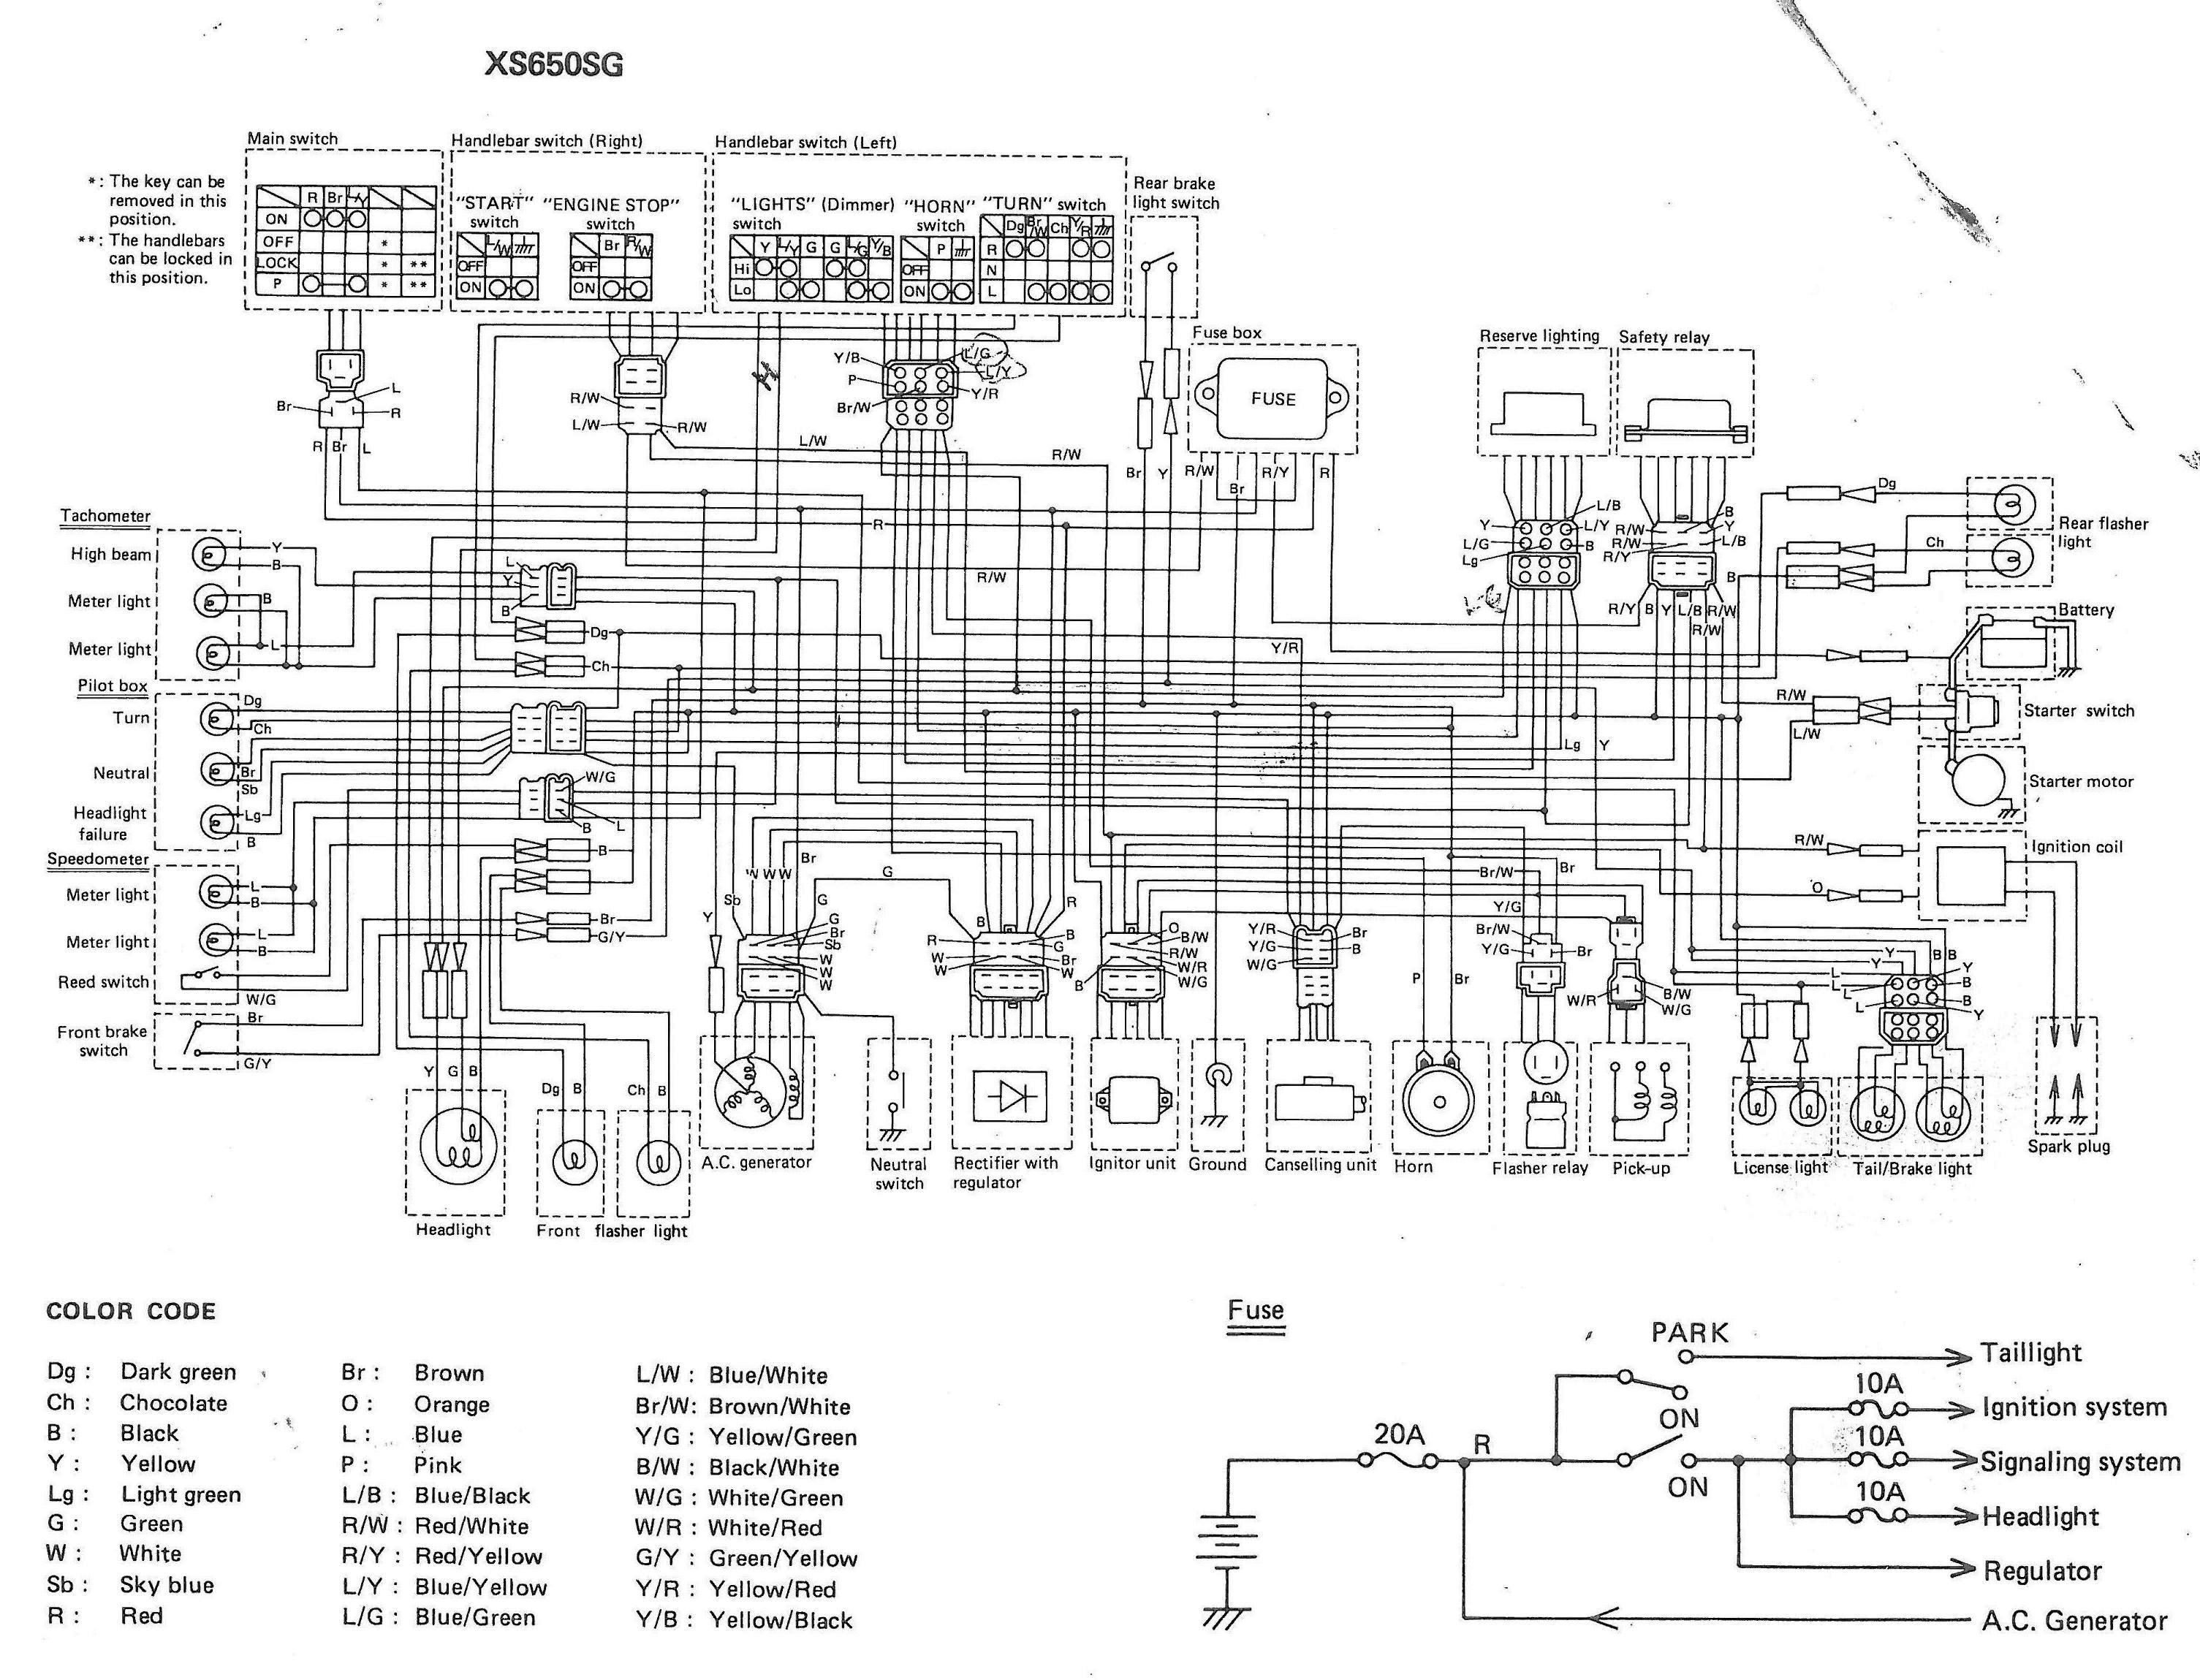 80 xs650sg 1 april 2012 thexscafe 1982 xs650 wiring diagram at eliteediting.co